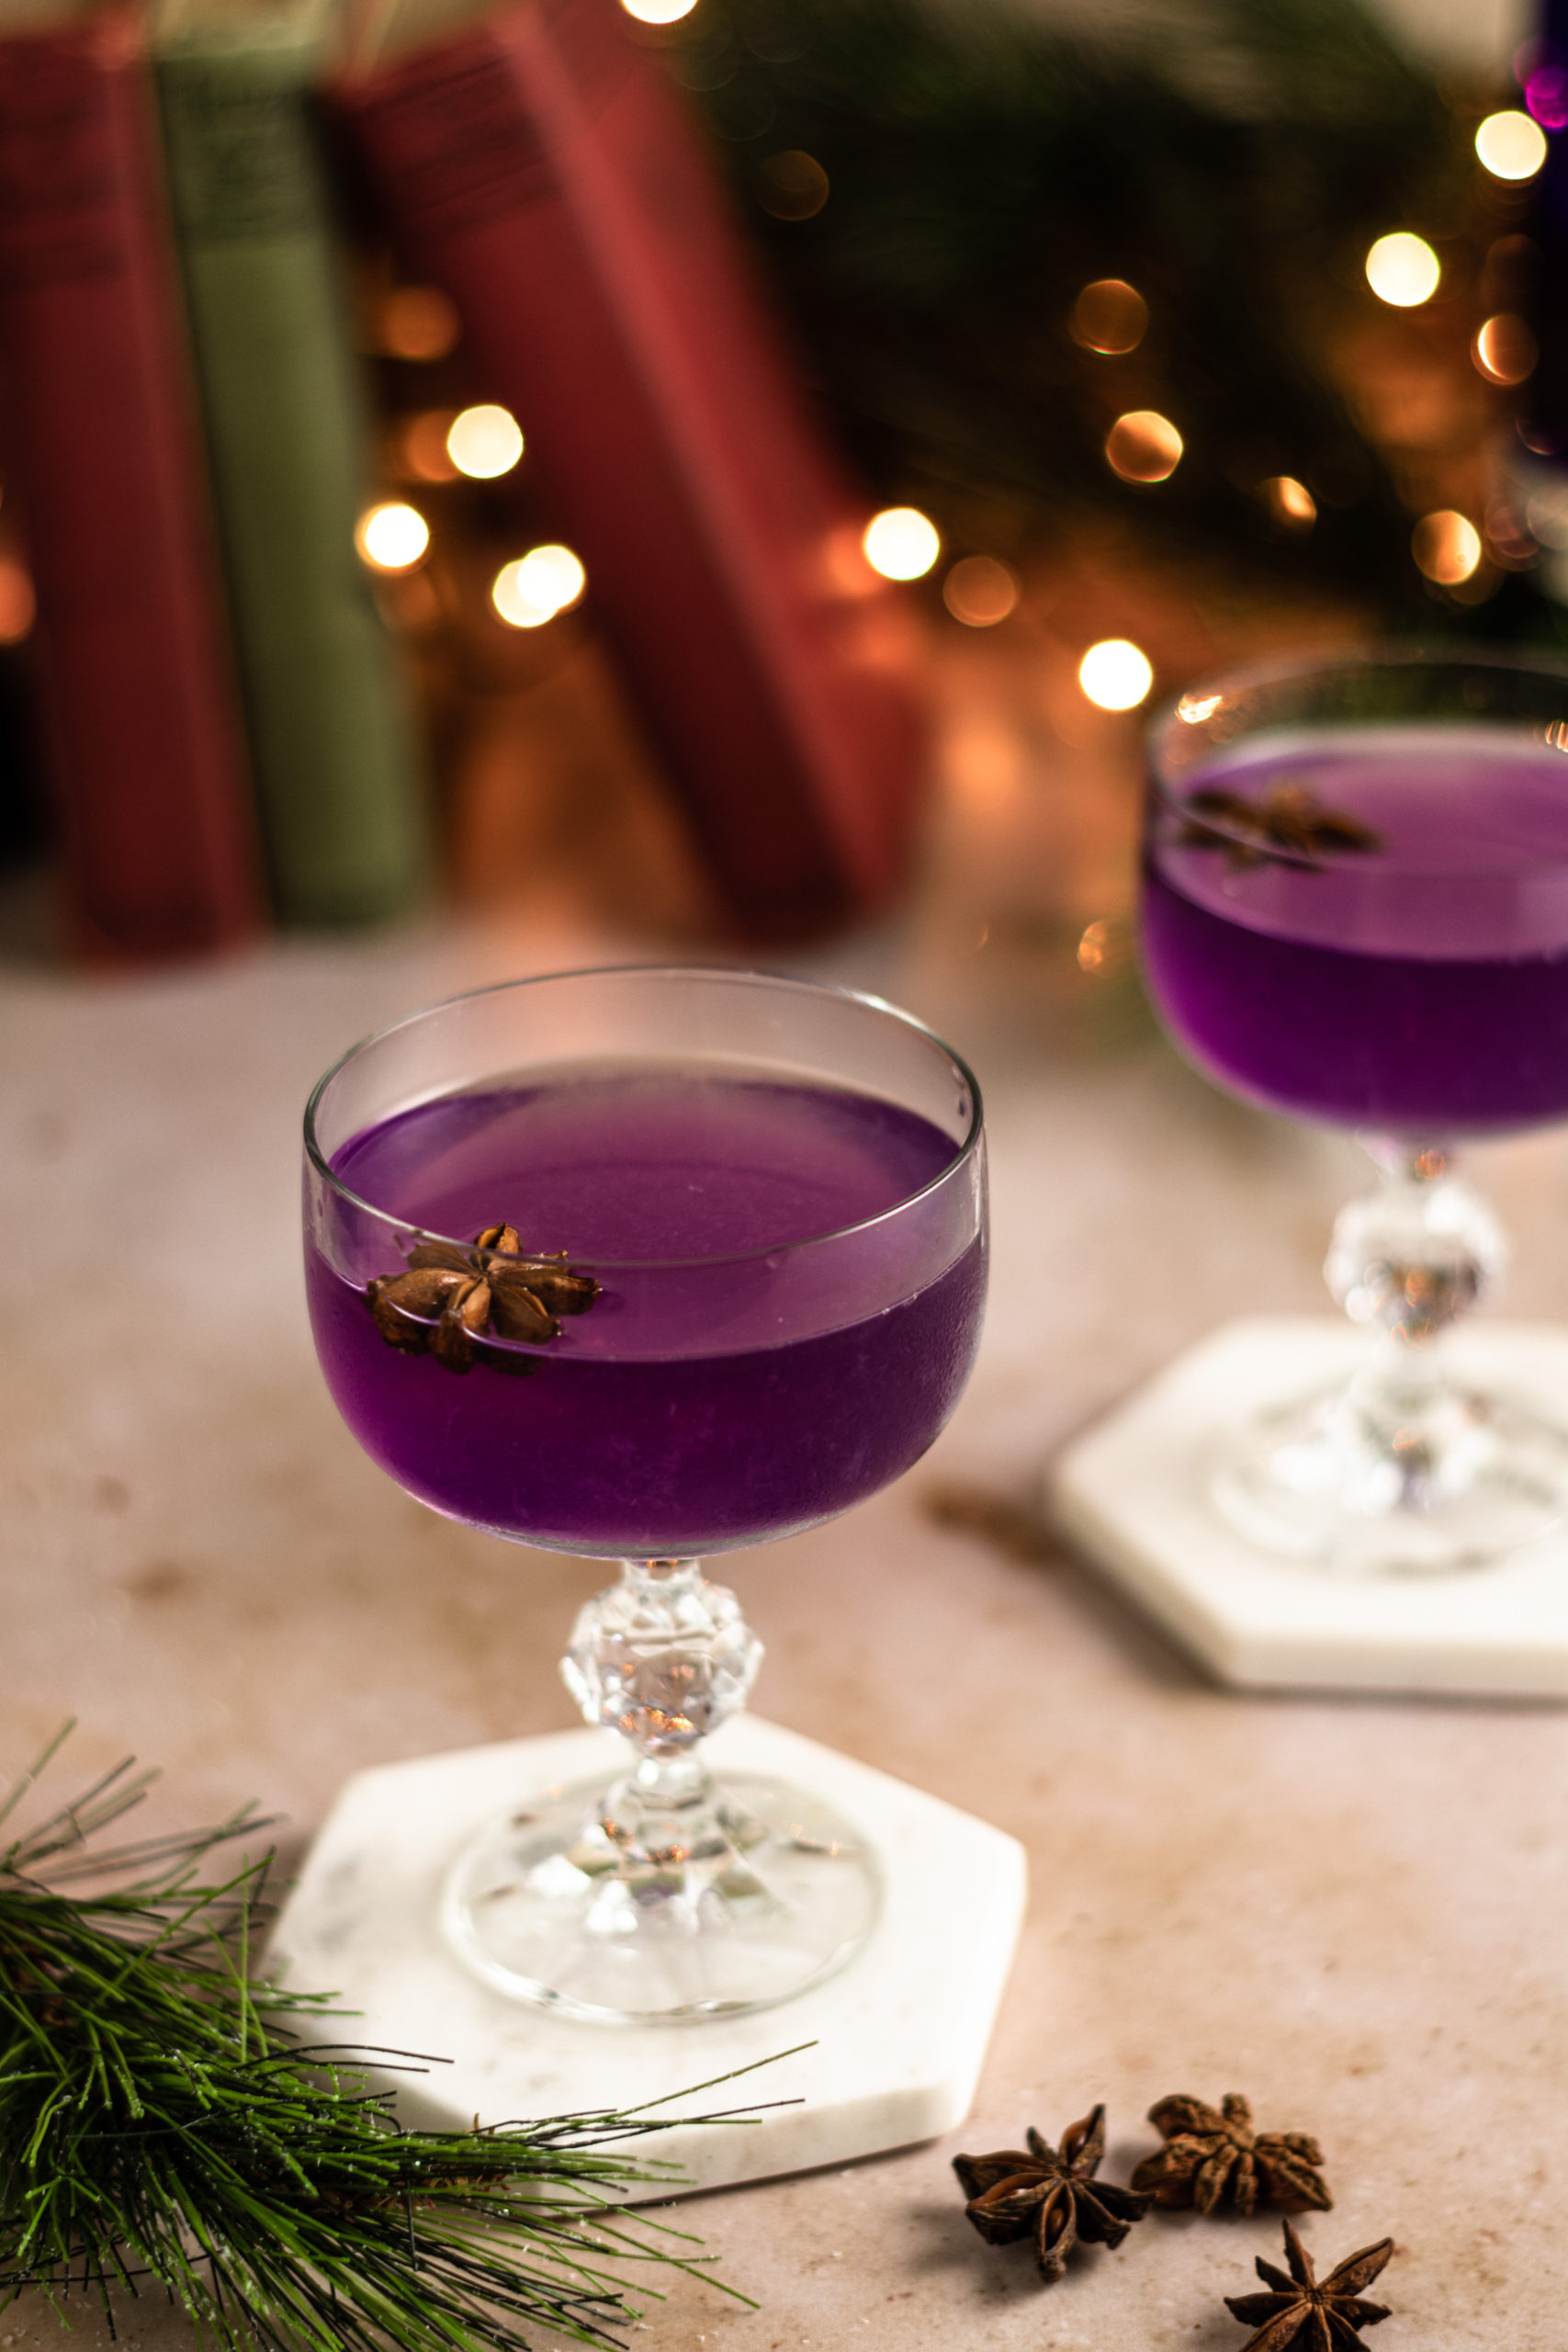 Two gin cocktails with star anise on top